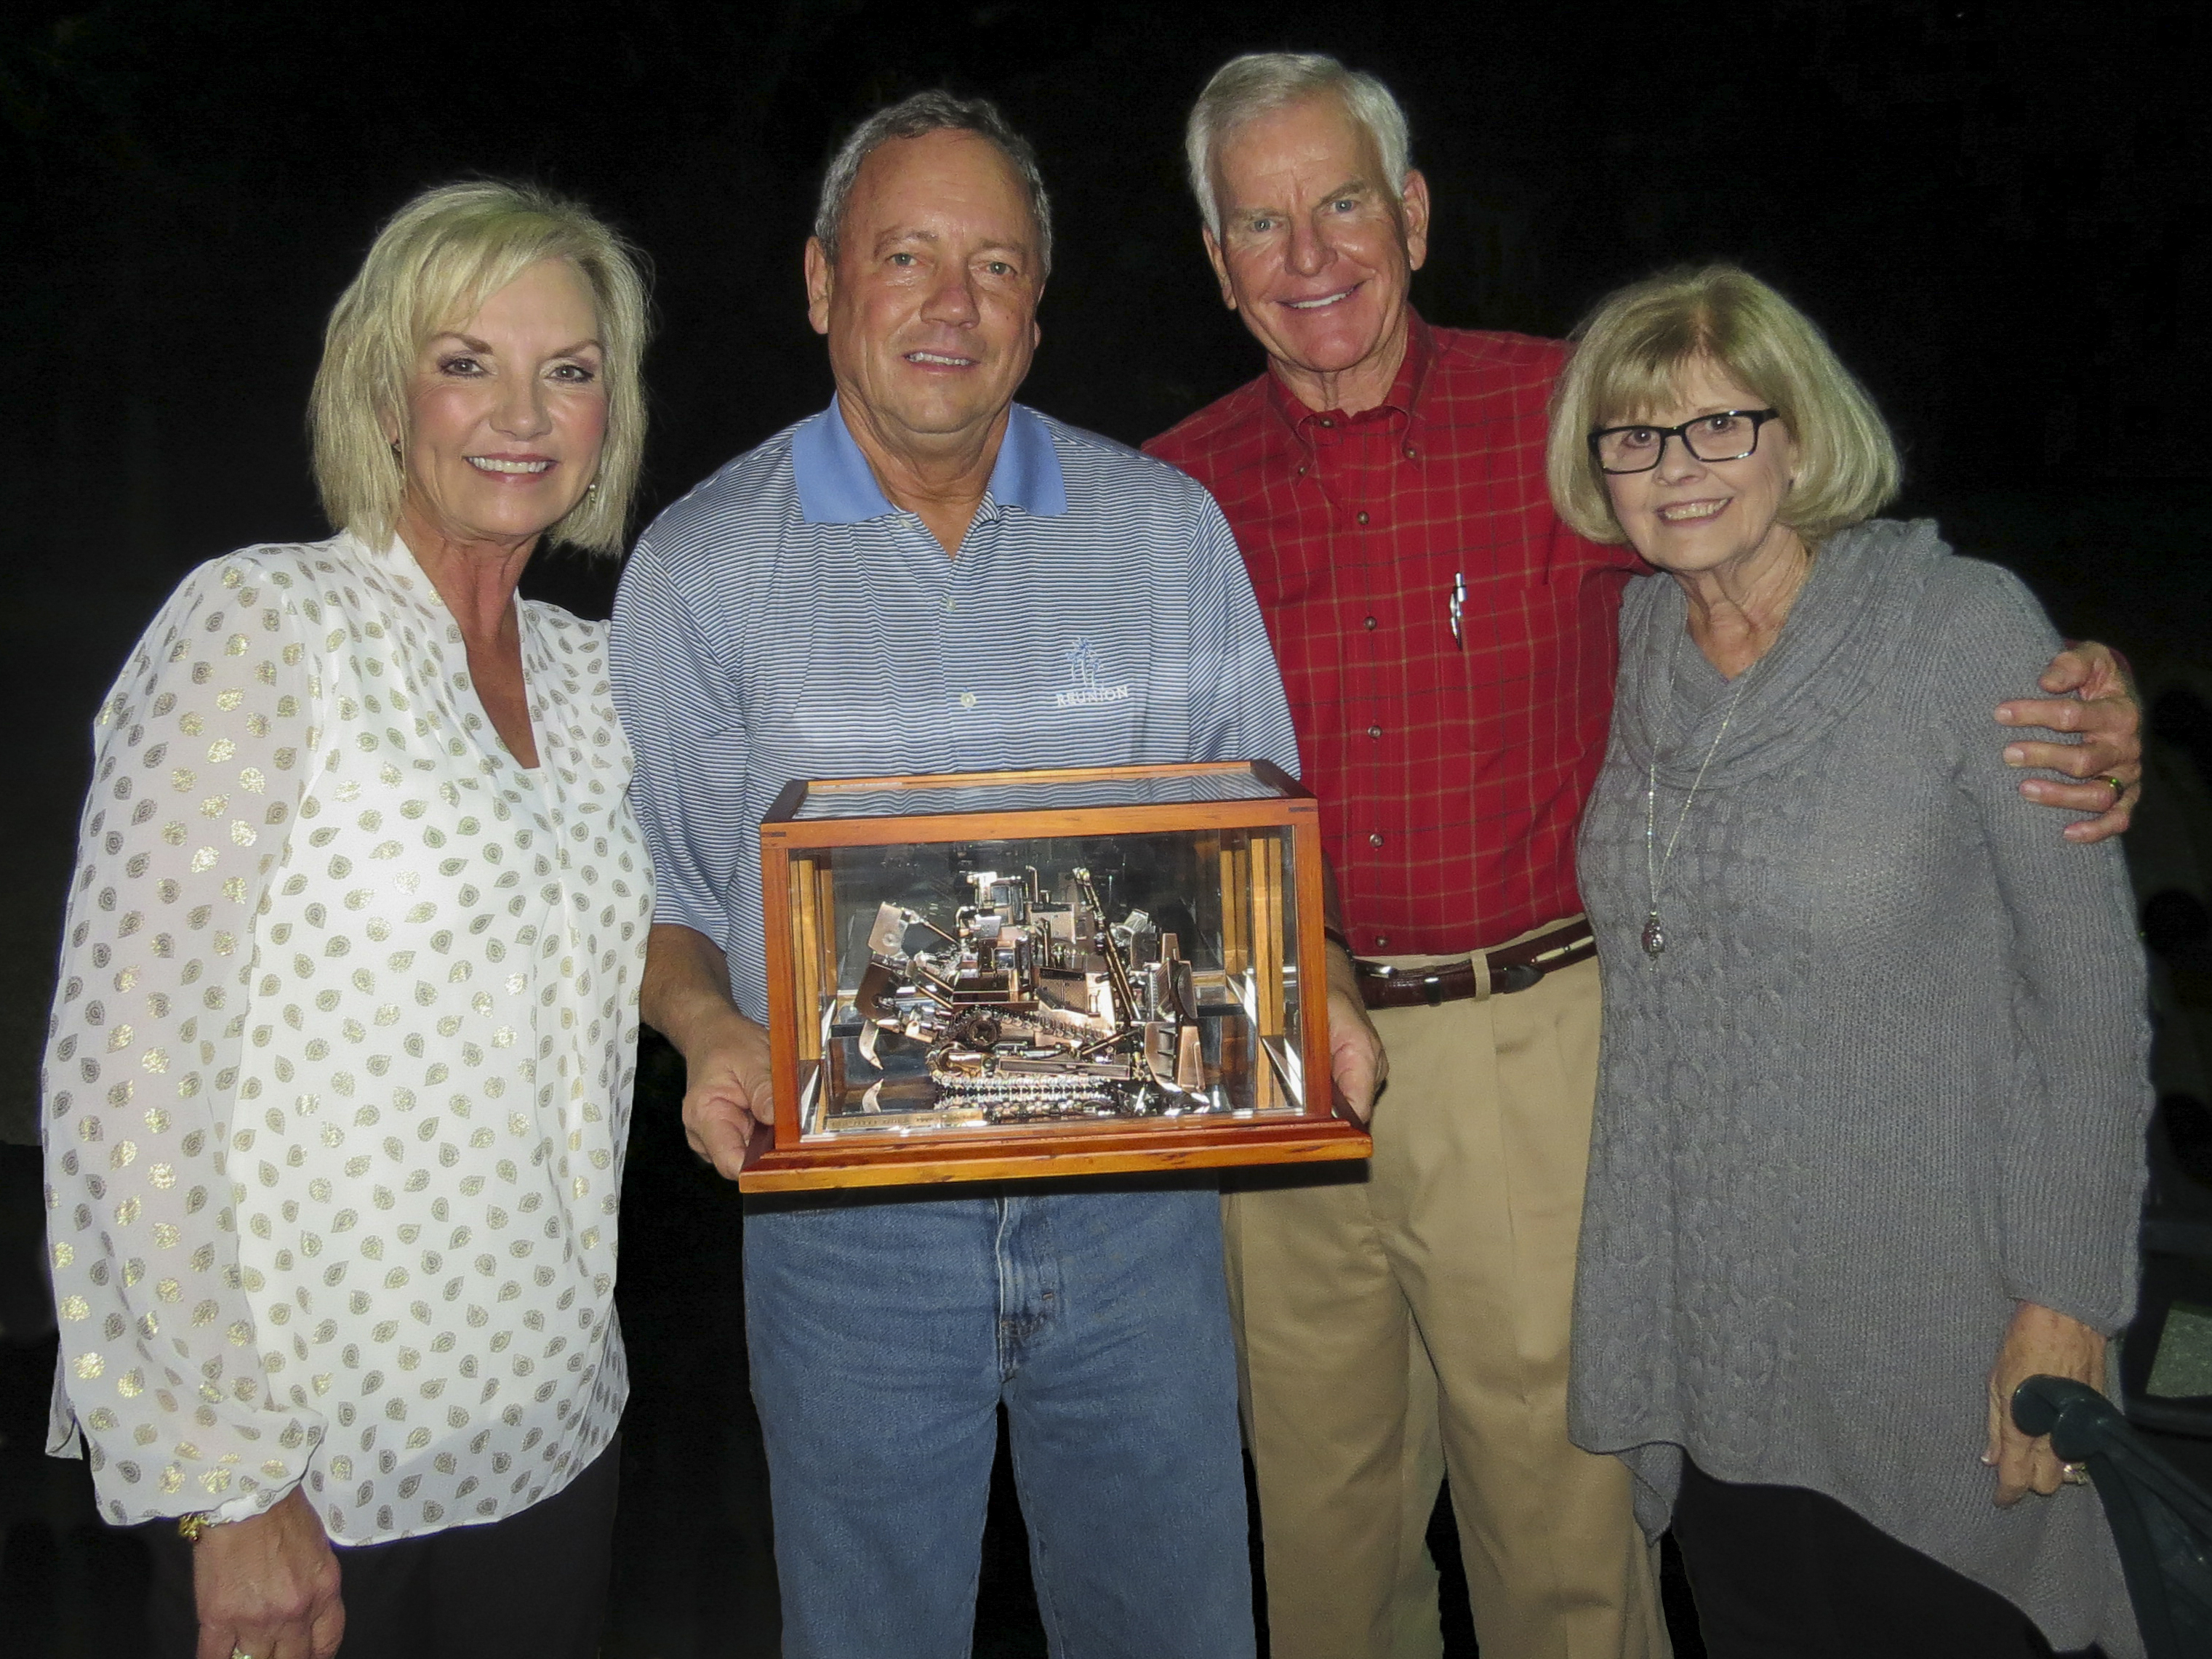 - Paula Ringhaver, Frank Fowler, Randy Ringhaver, & Lynne Fowler are pictured at a board of directors meeting where Frank Fowler was presented with a commemorative collector model Cat D11T tractor.